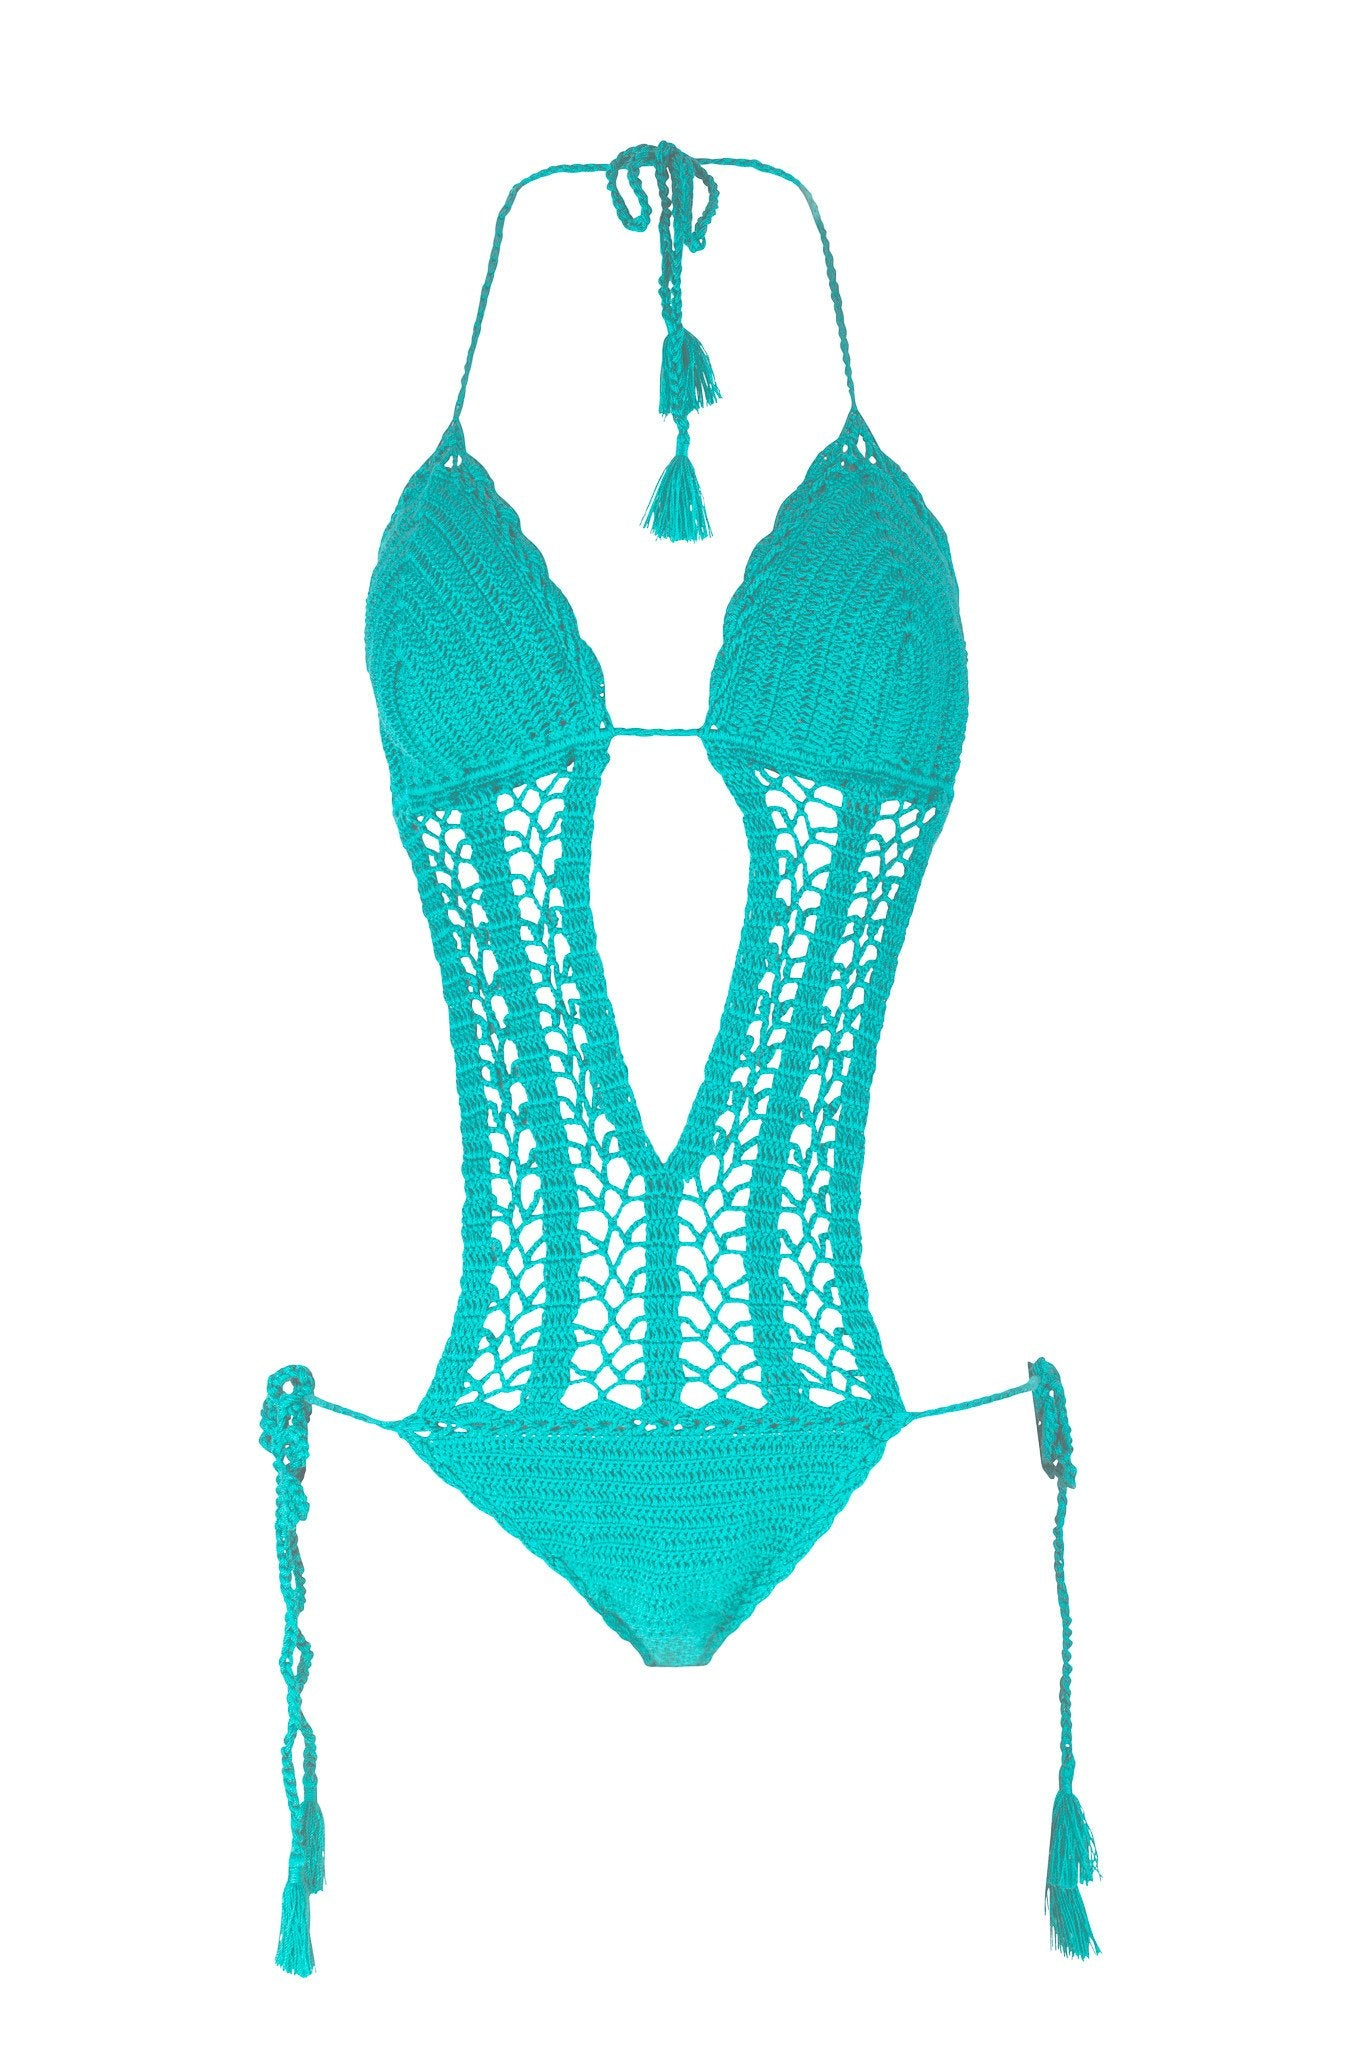 Crochet Monokini | Essaouira - Swimsuit by Mer Culture Swimwear Hong Kong